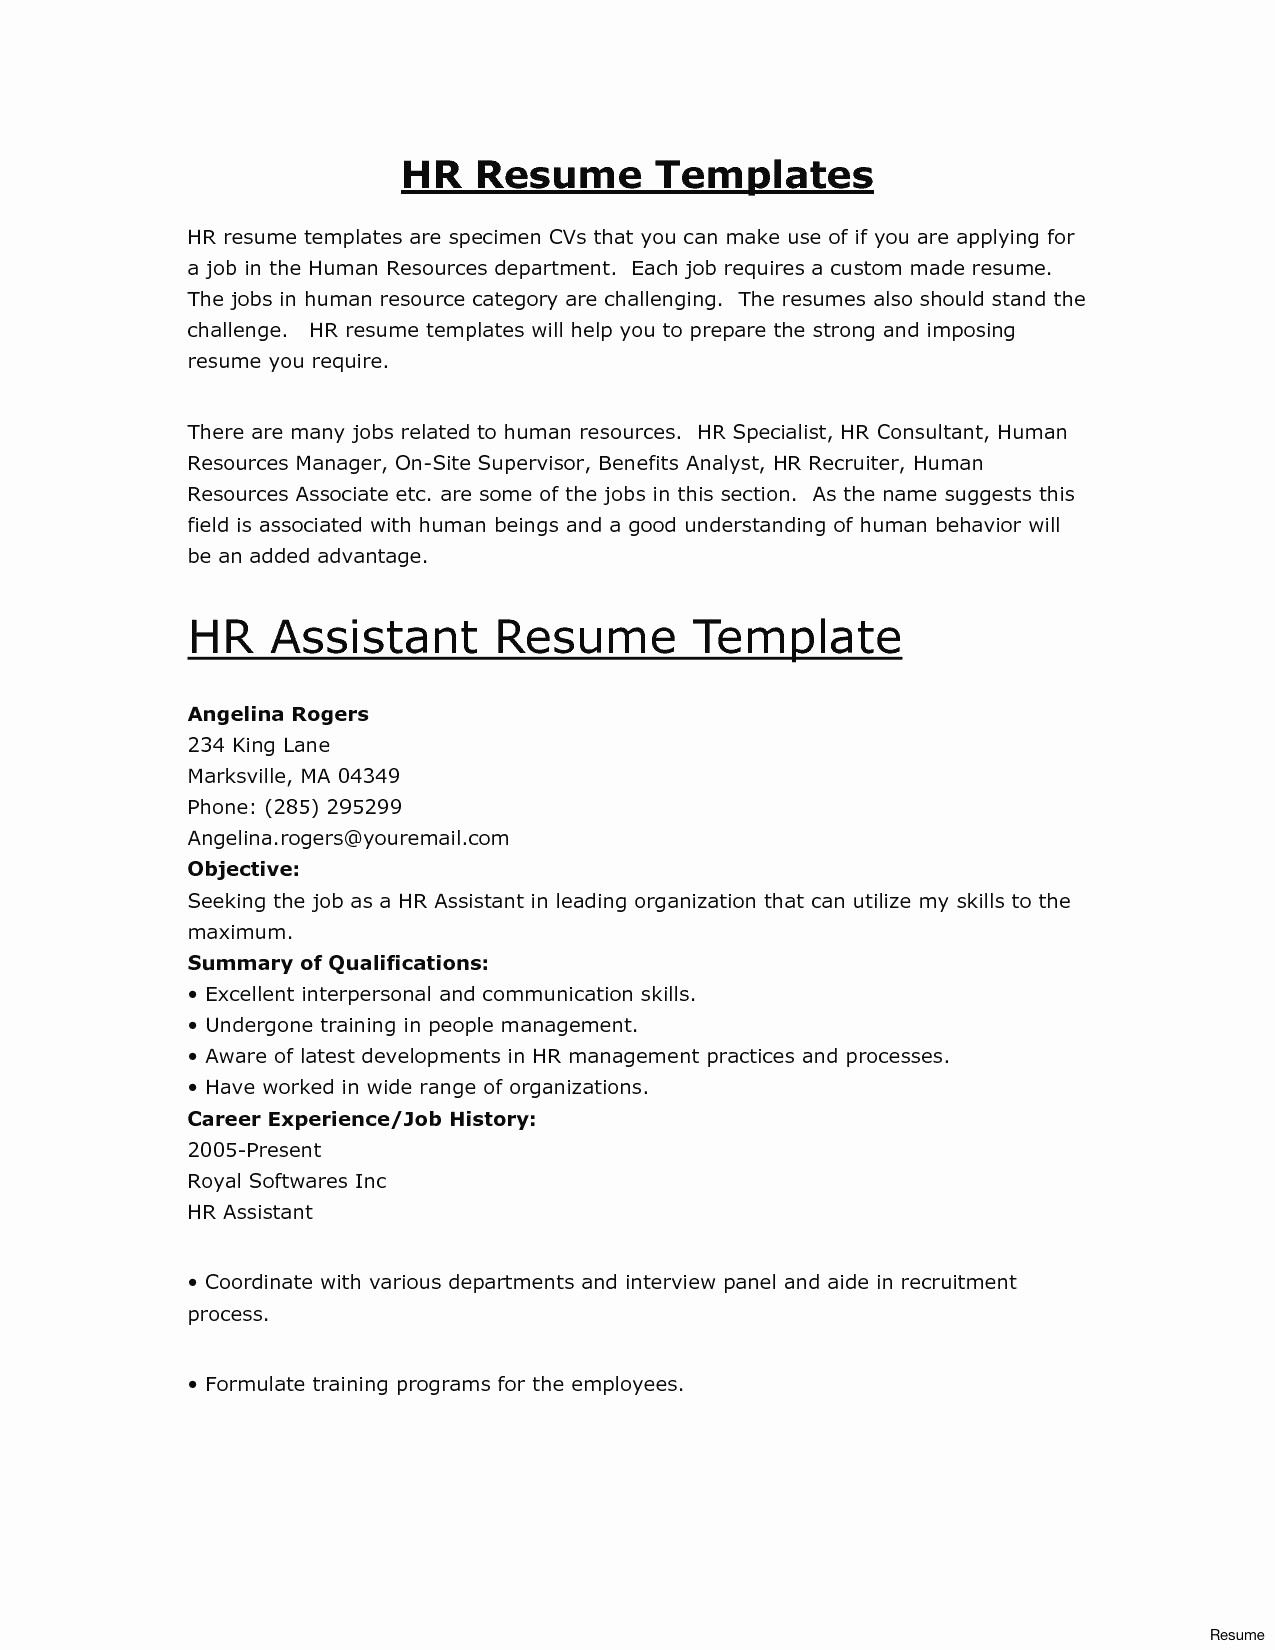 Work Verification Letter Template - Inspirational Employment Verification Letter Template